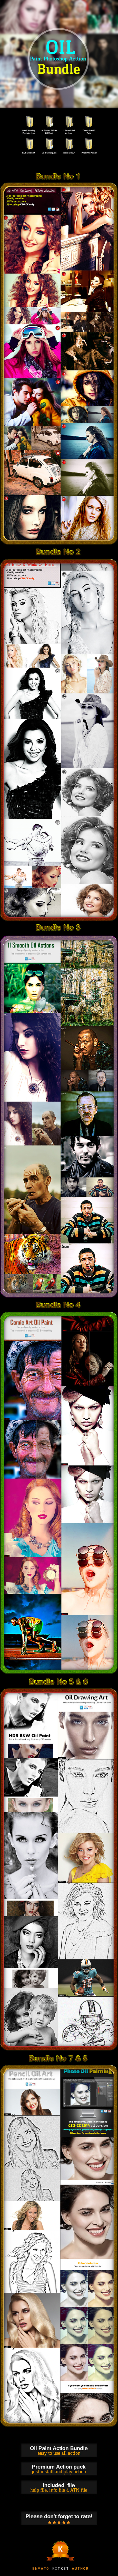 GraphicRiver Oil Paint Photoshop Action Bundle 11448242